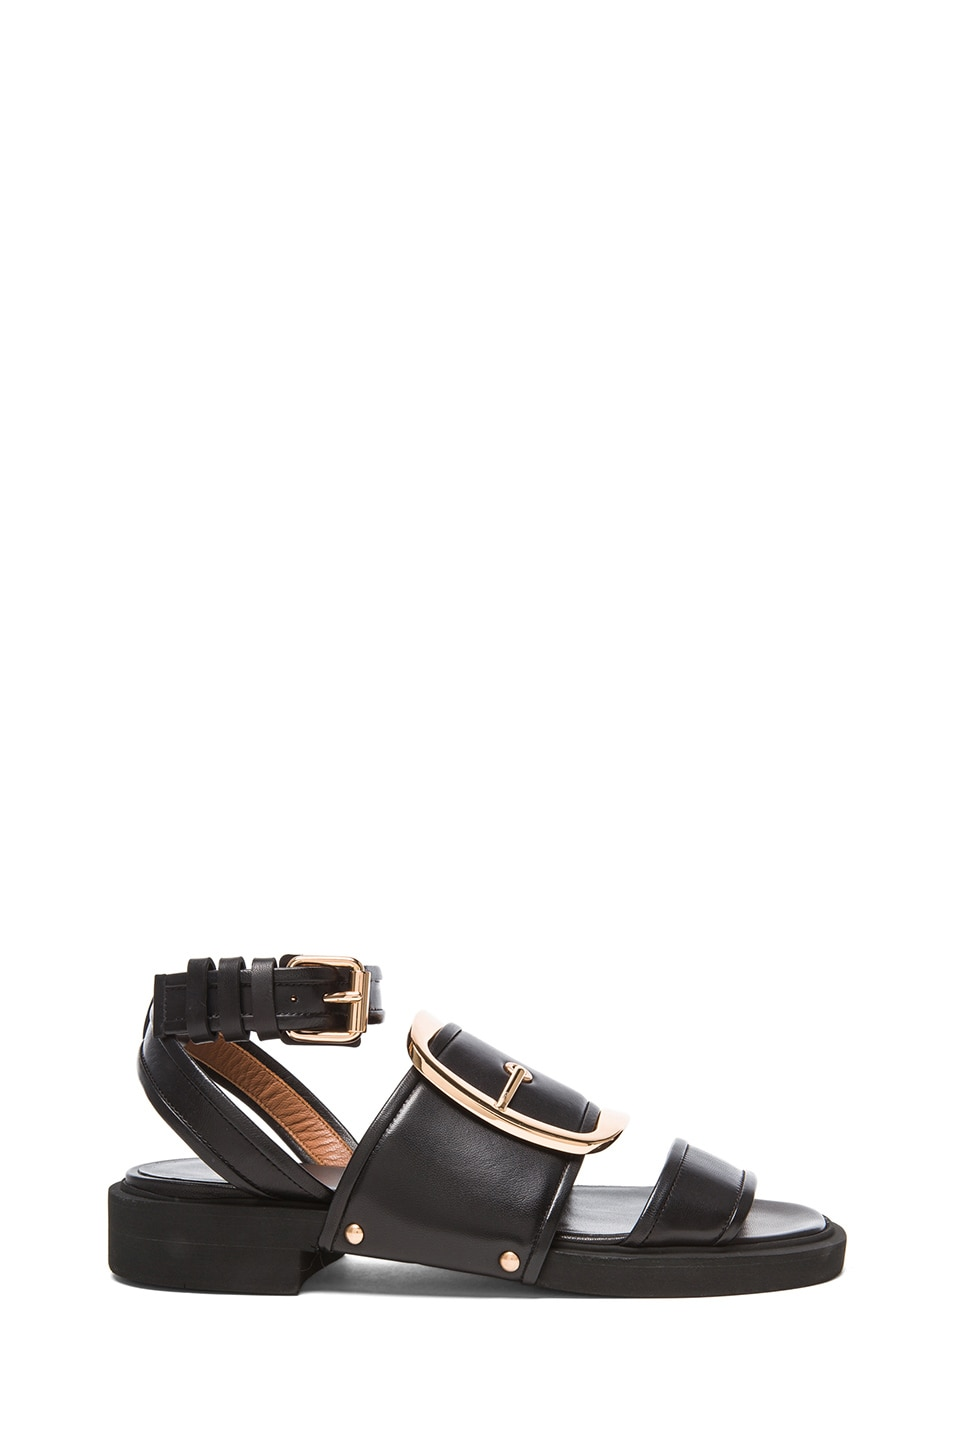 Give a Buckle Sandal free shipping pay with paypal cheap low cost K69iBJko